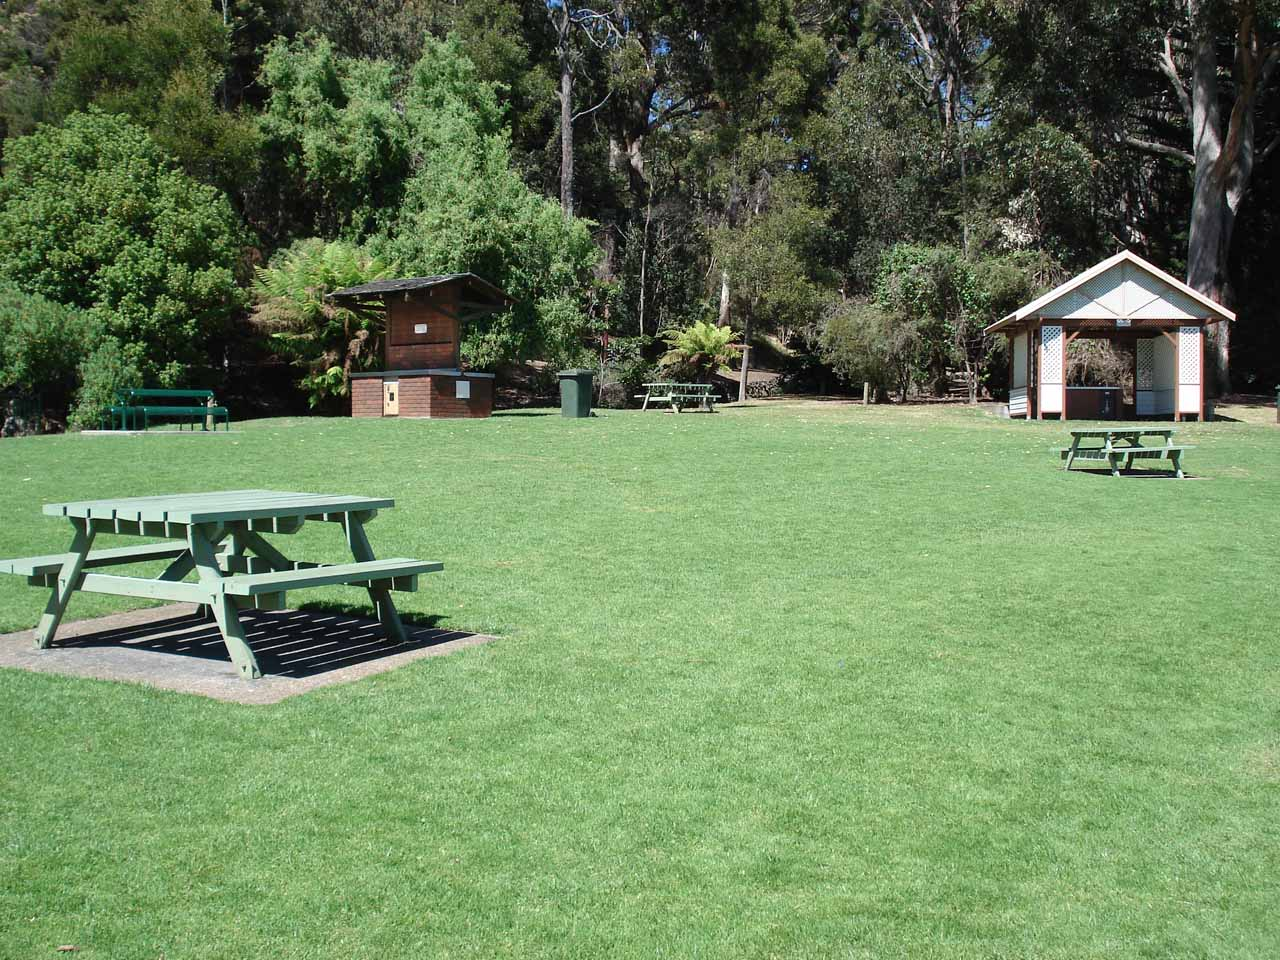 Picnic area at the Burnie Park